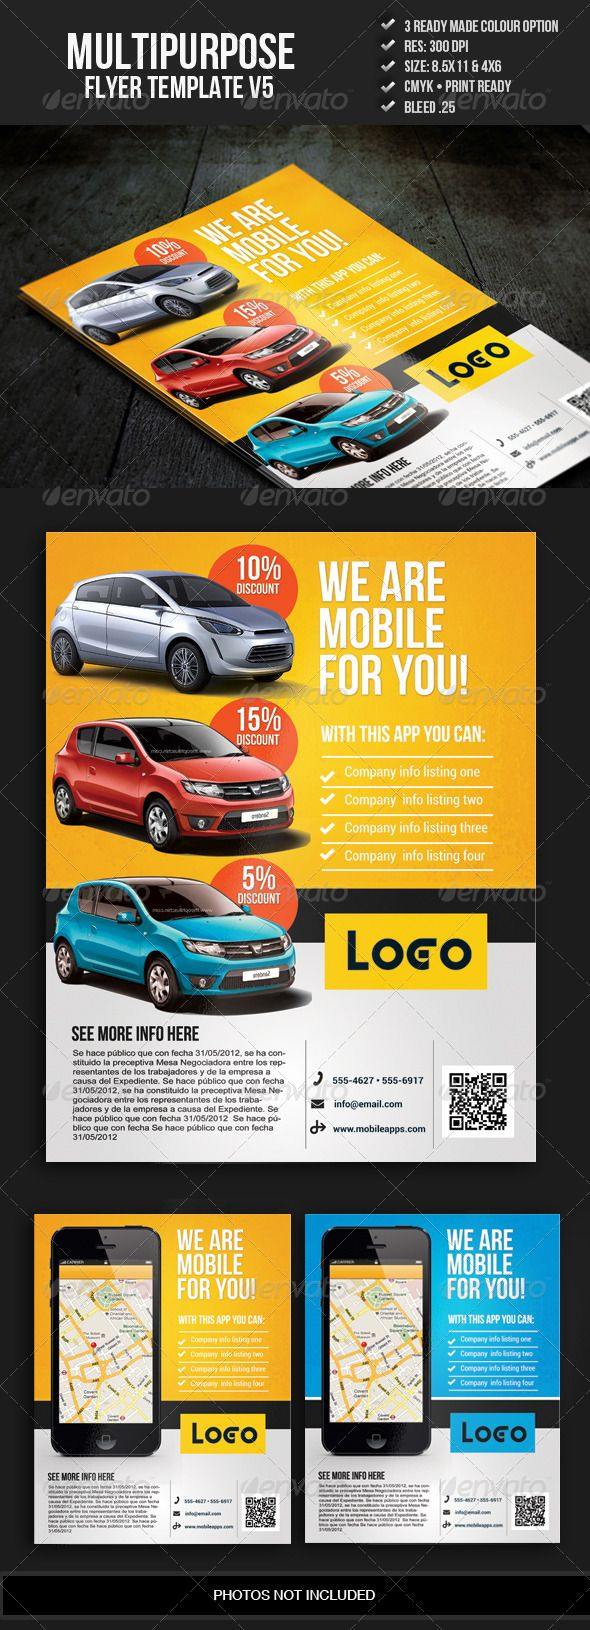 Multipurpose Promo Flyer V5  #GraphicRiver         This fully layered corporate flyer can be used for multipurpose such as salon, insurance, real estate, mobile, car ads and much more.  	 FEATURES